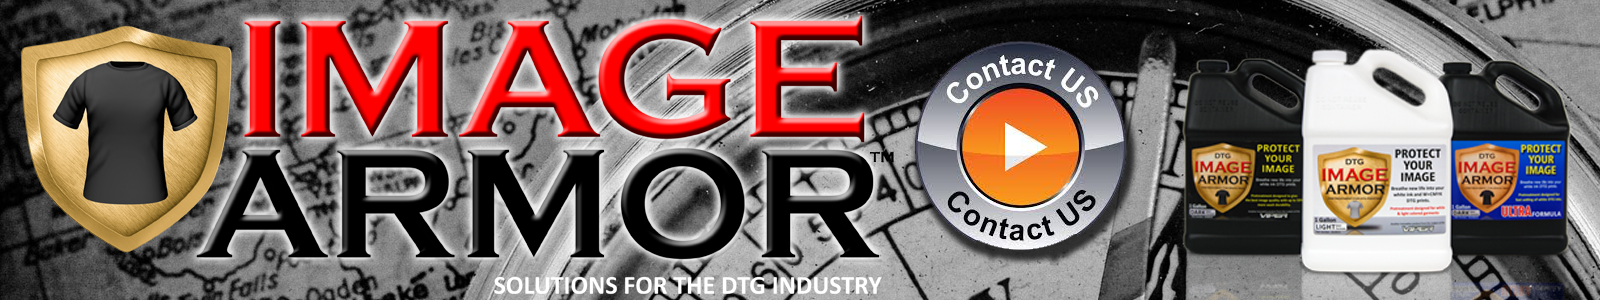 Contact Us Image Armor Header